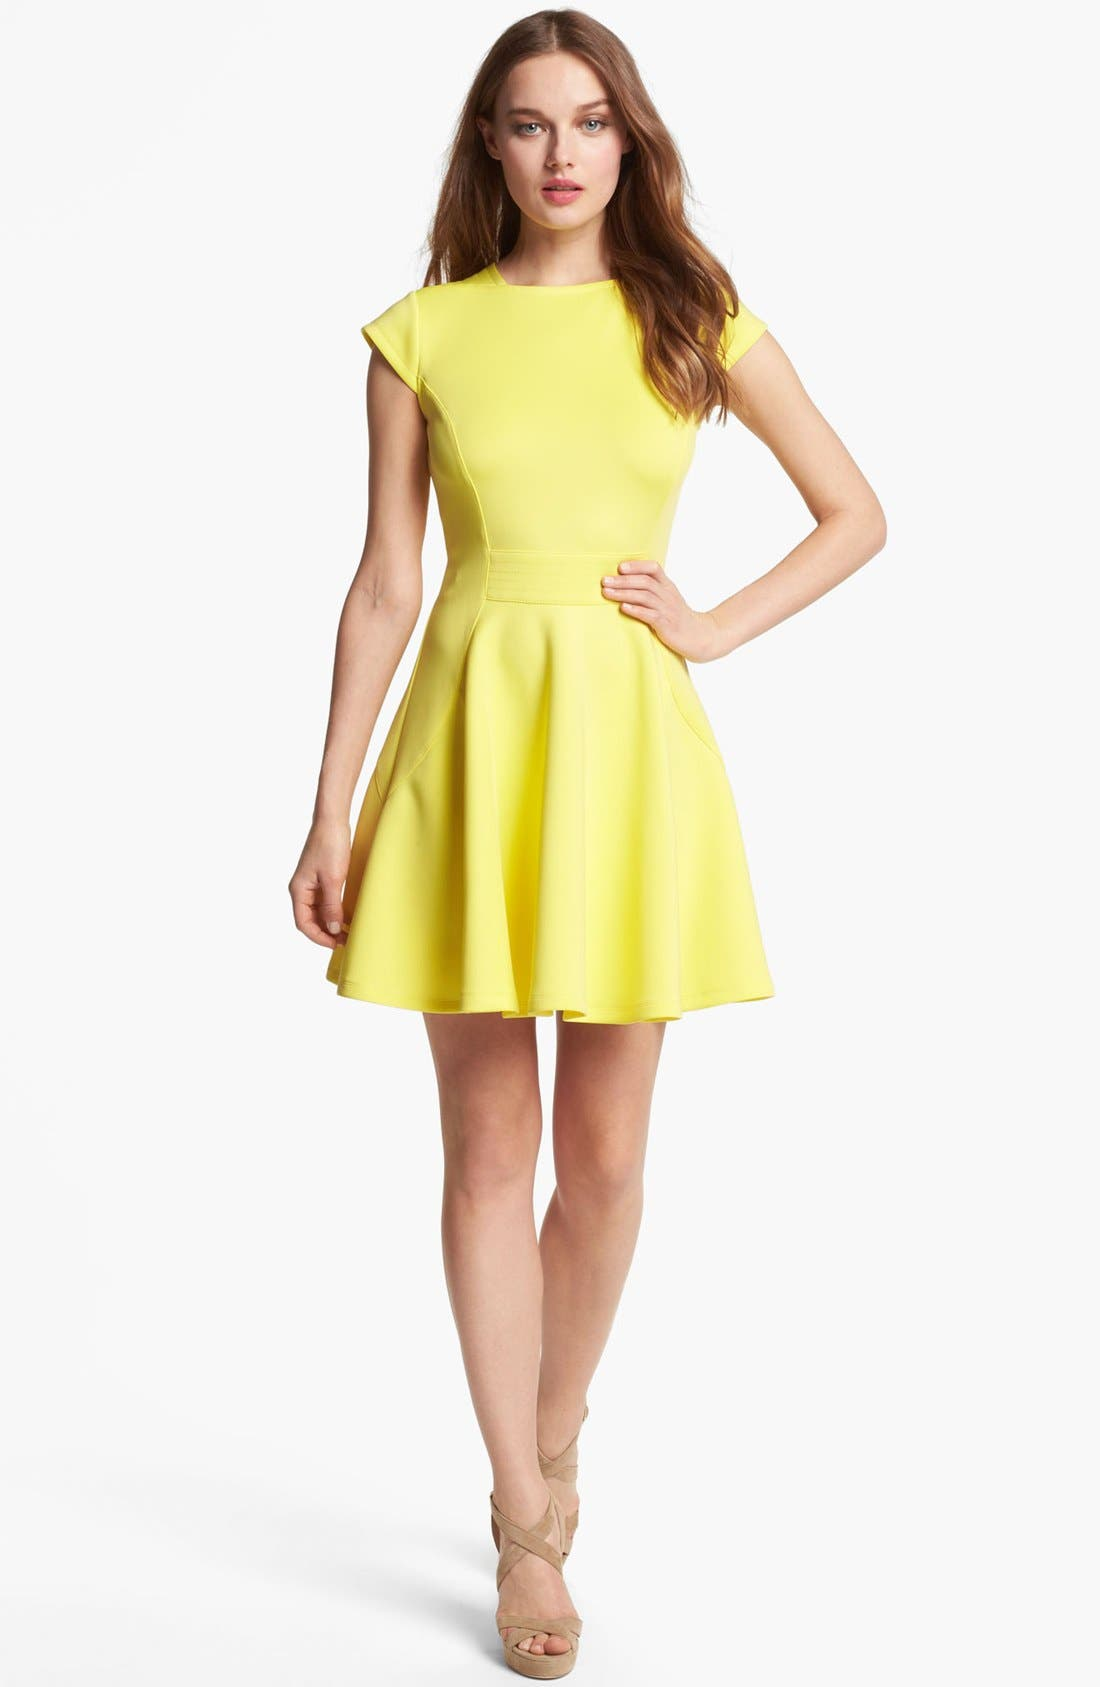 Alternate Image 1 Selected - Ted Baker London Stretch Fit & Flare Dress